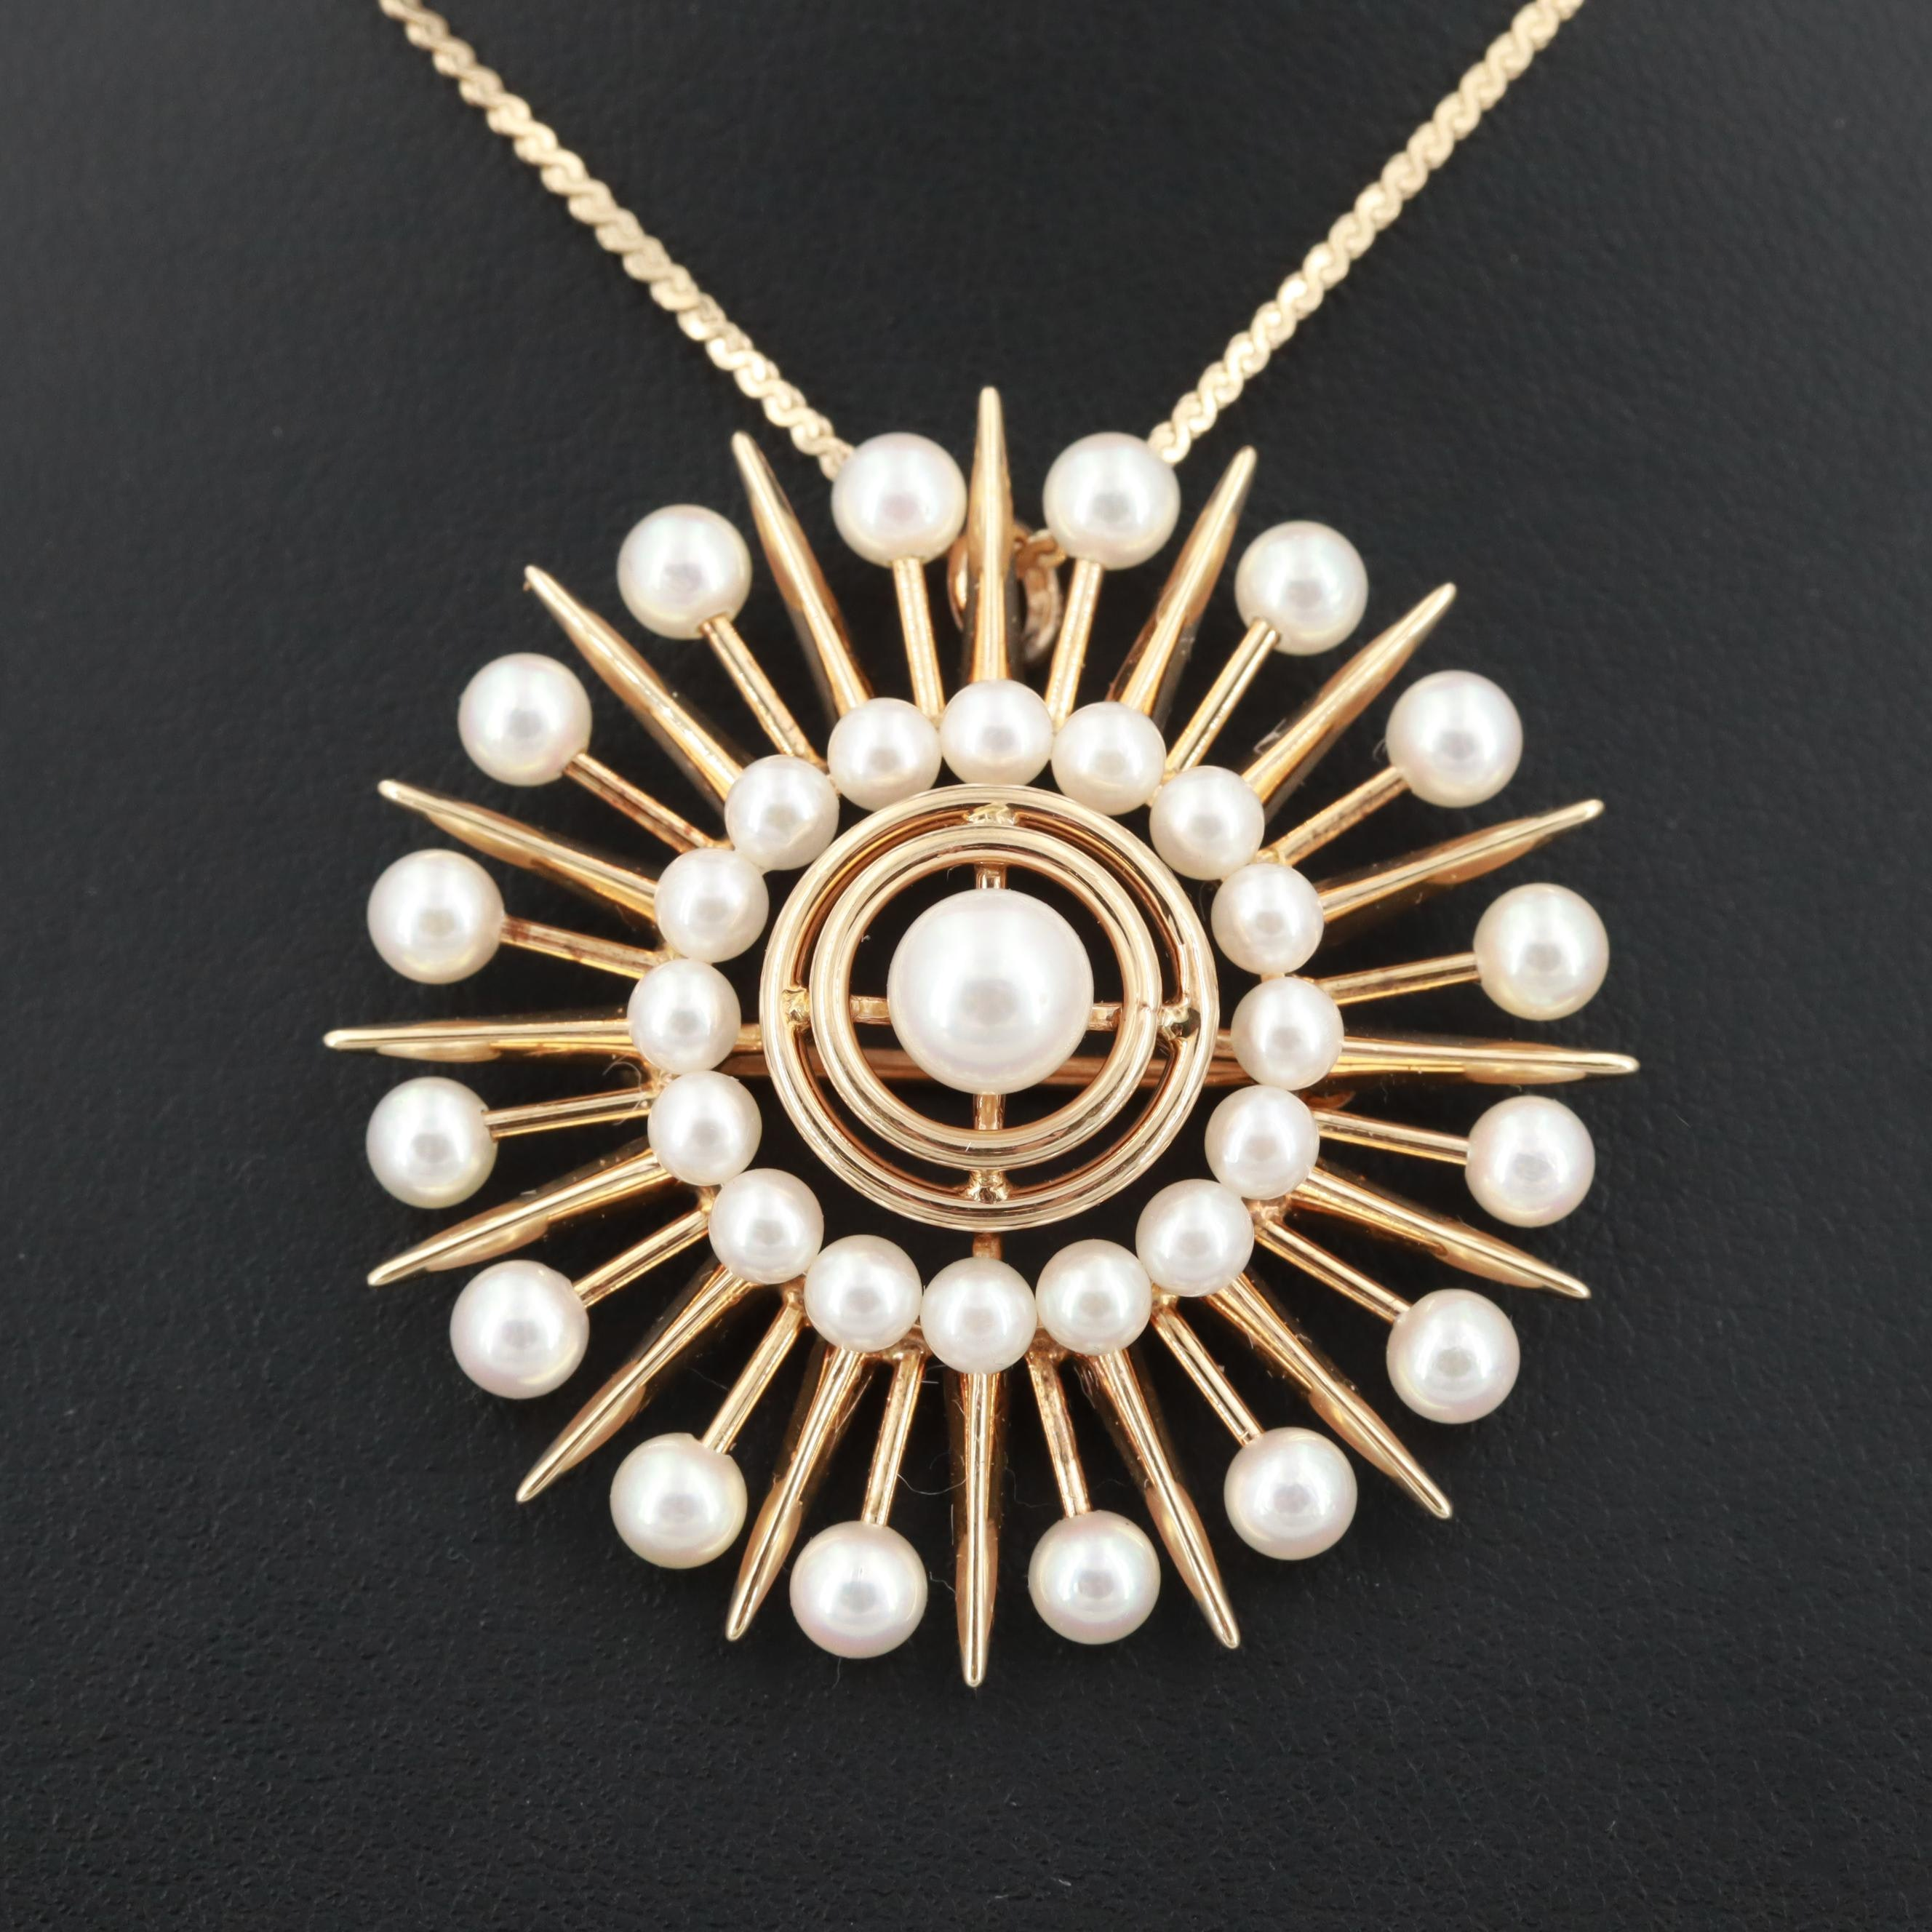 Circa 1950s 14K Yellow Gold Cultured Pearl Starburst Converter Pendant Necklace